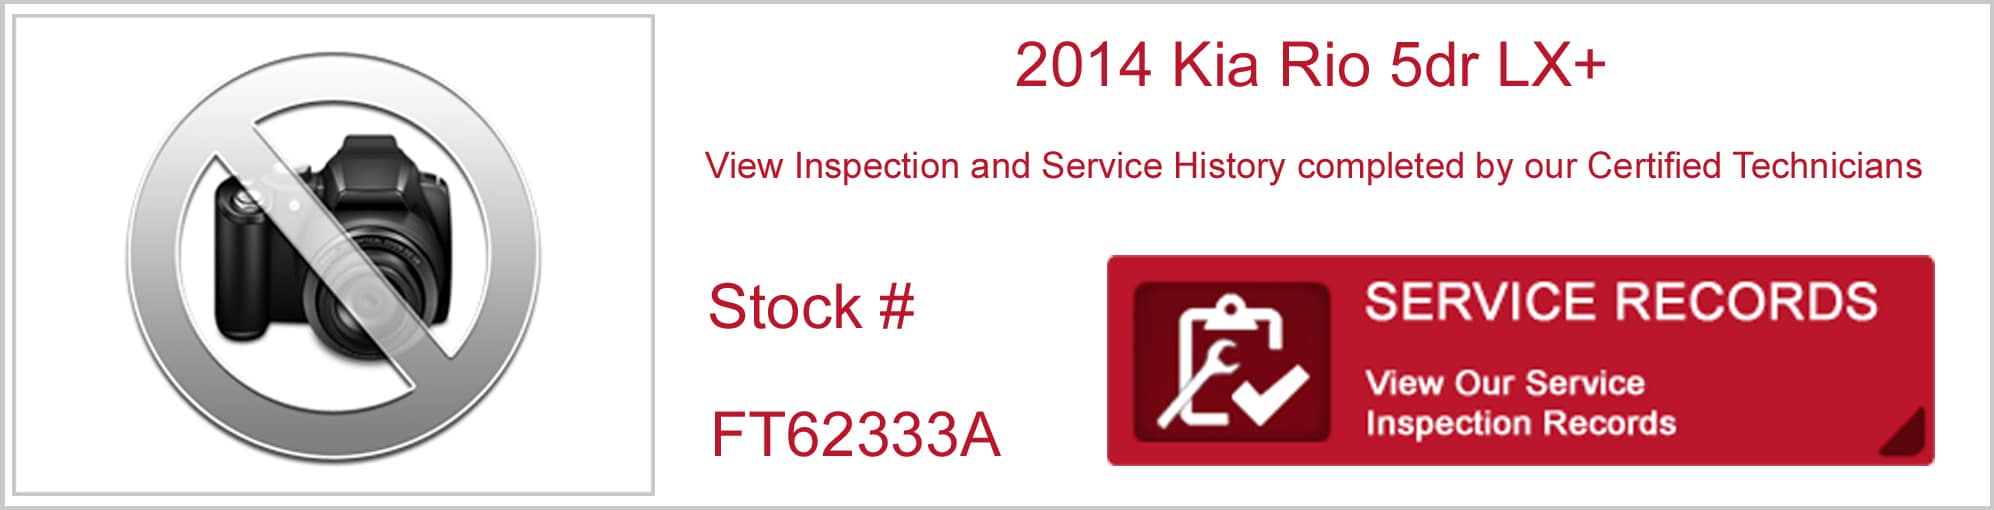 inspection reports service records used cars murray kia